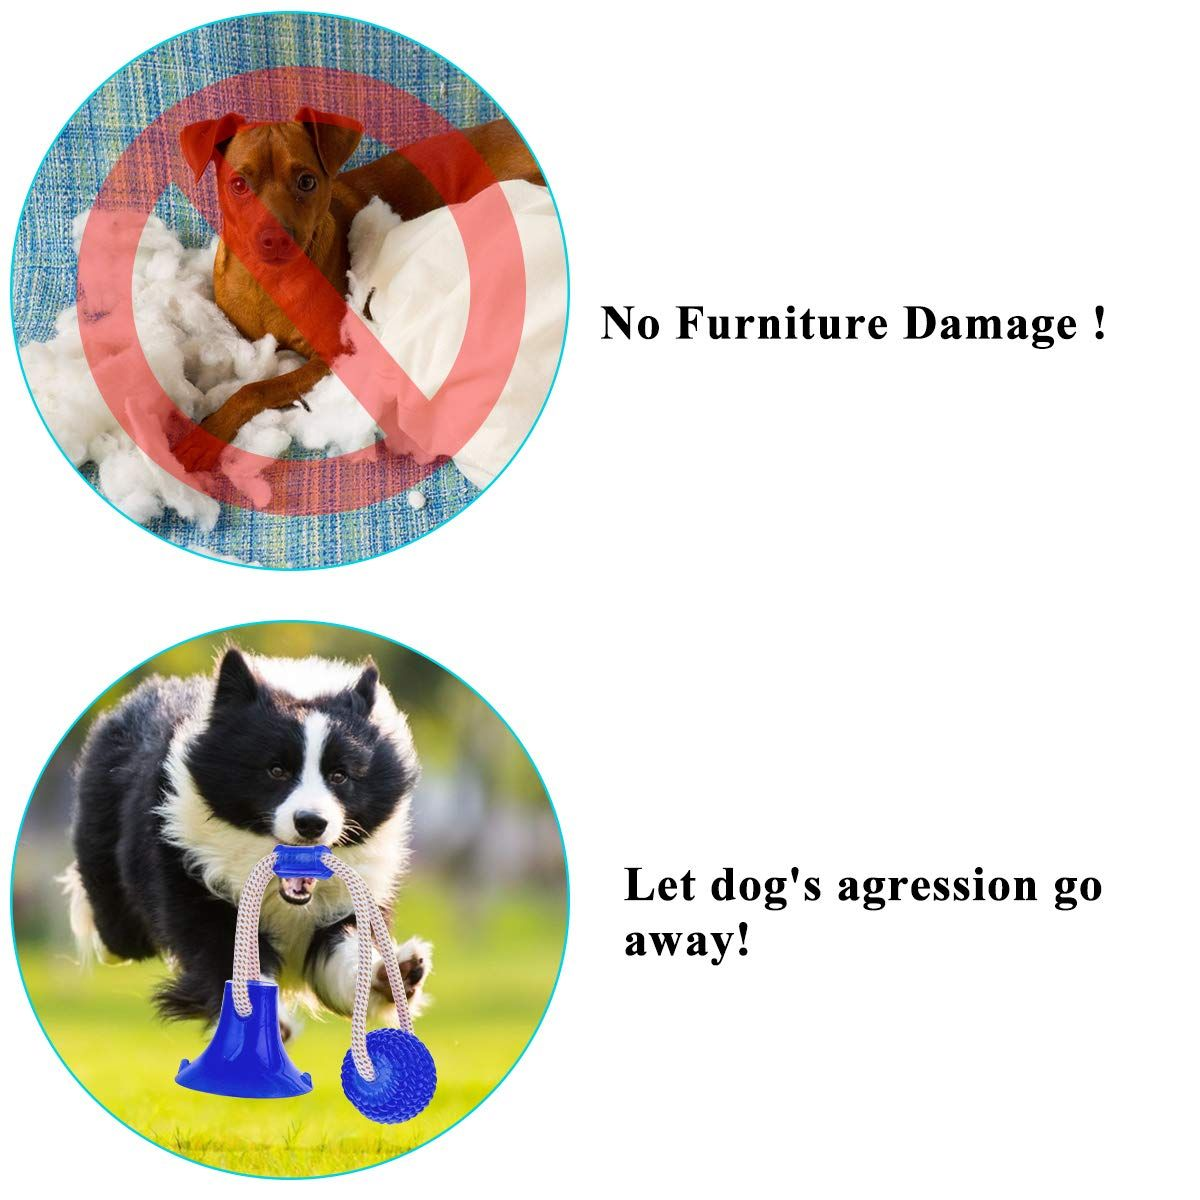 Litthing Dog Self Play Toys Rubber Ball Read More Reviews Of The Product By Visiting The Link On The Image It Is An In 2020 Dog Toys Puppy Chew Toys Puppy Chewing